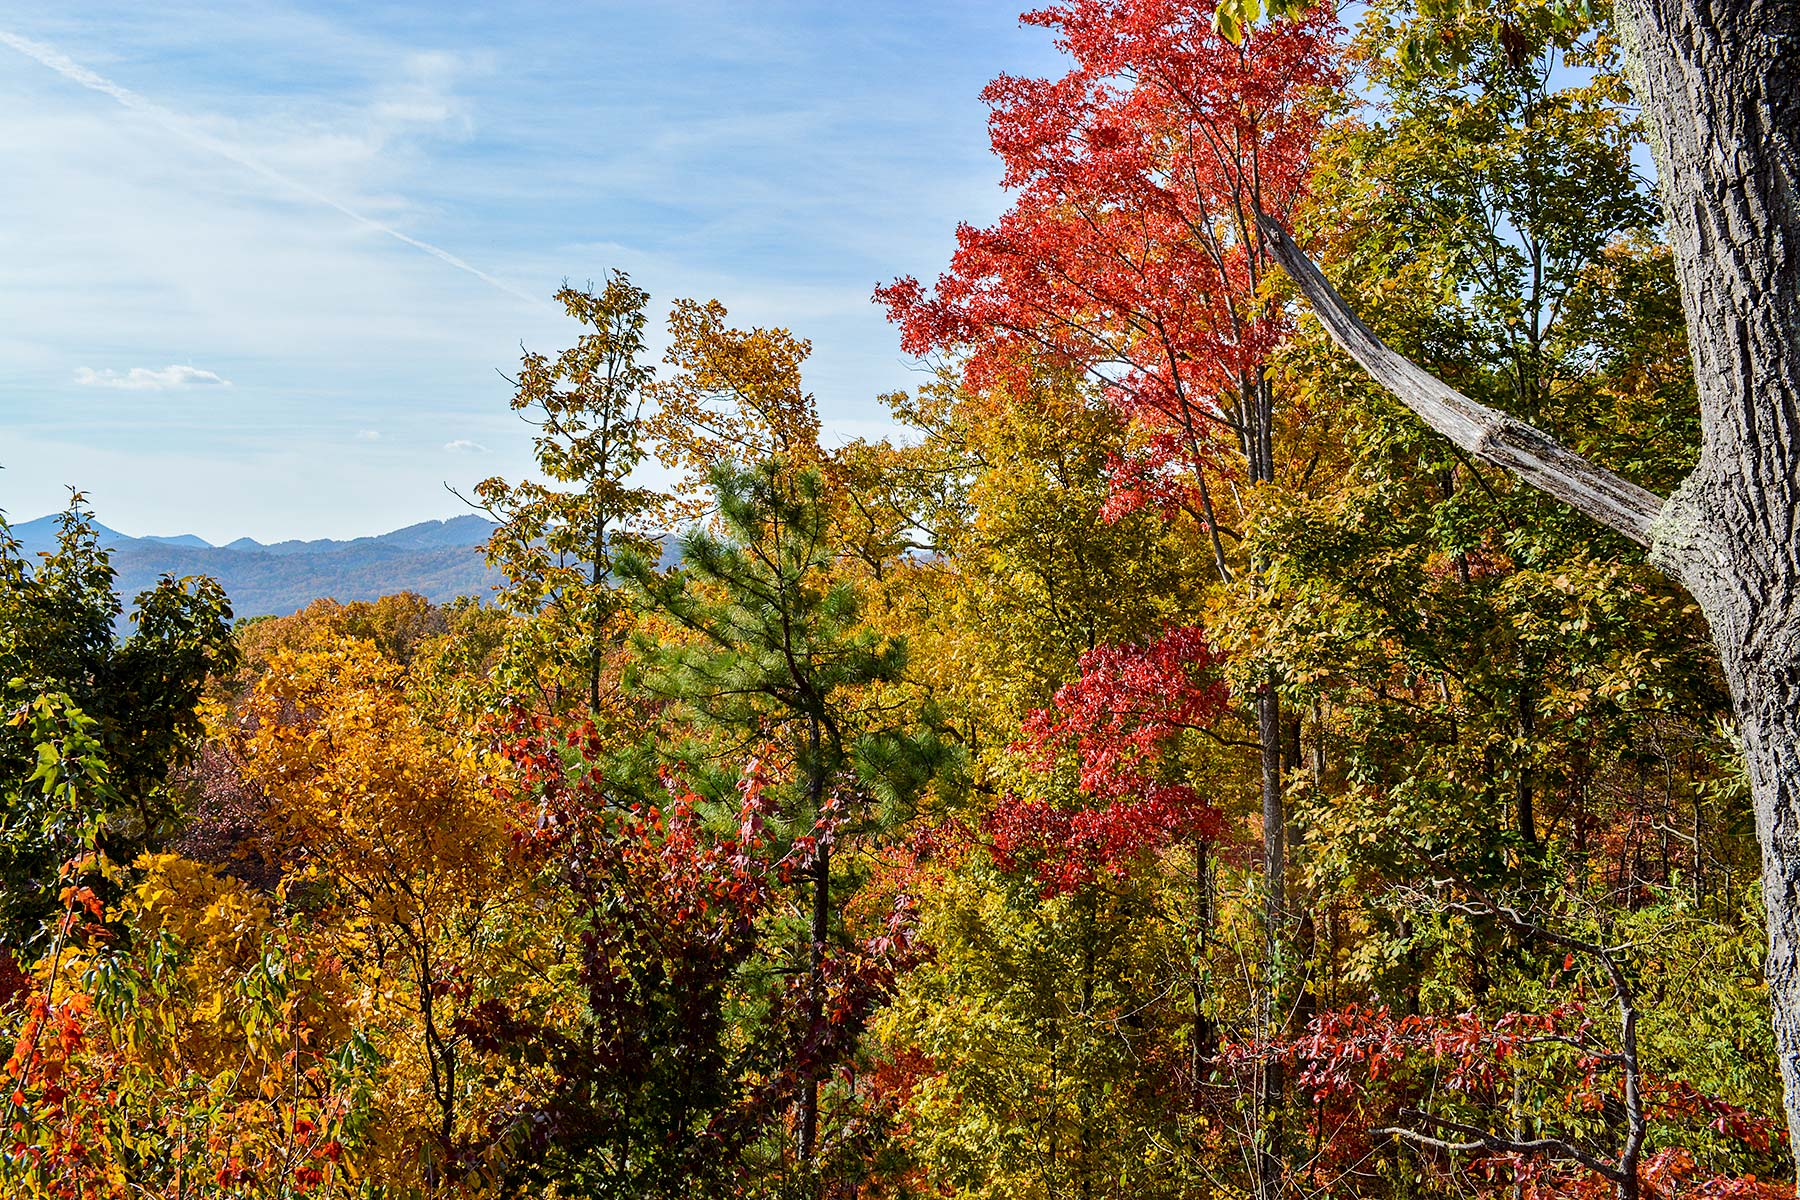 Beautiful fall colors in the Smoky Mountains